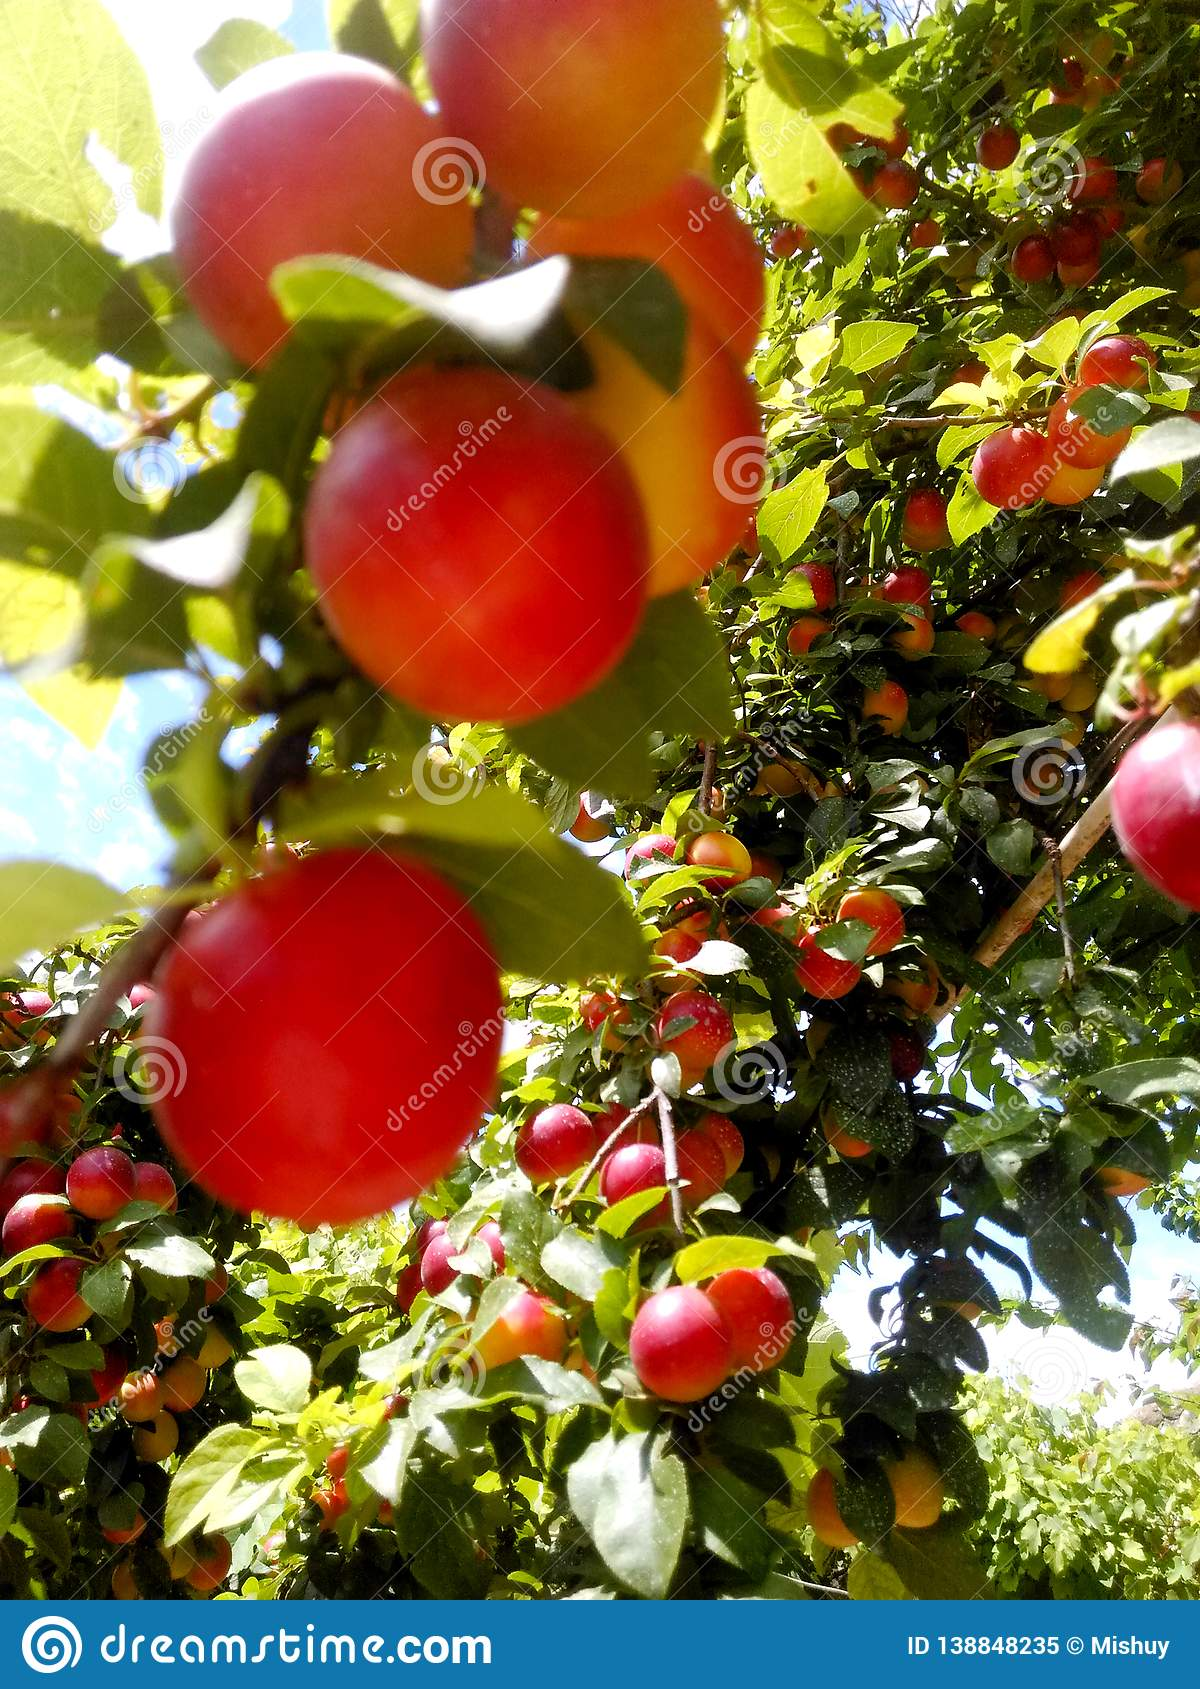 Red wax cherry tree branch with fruits